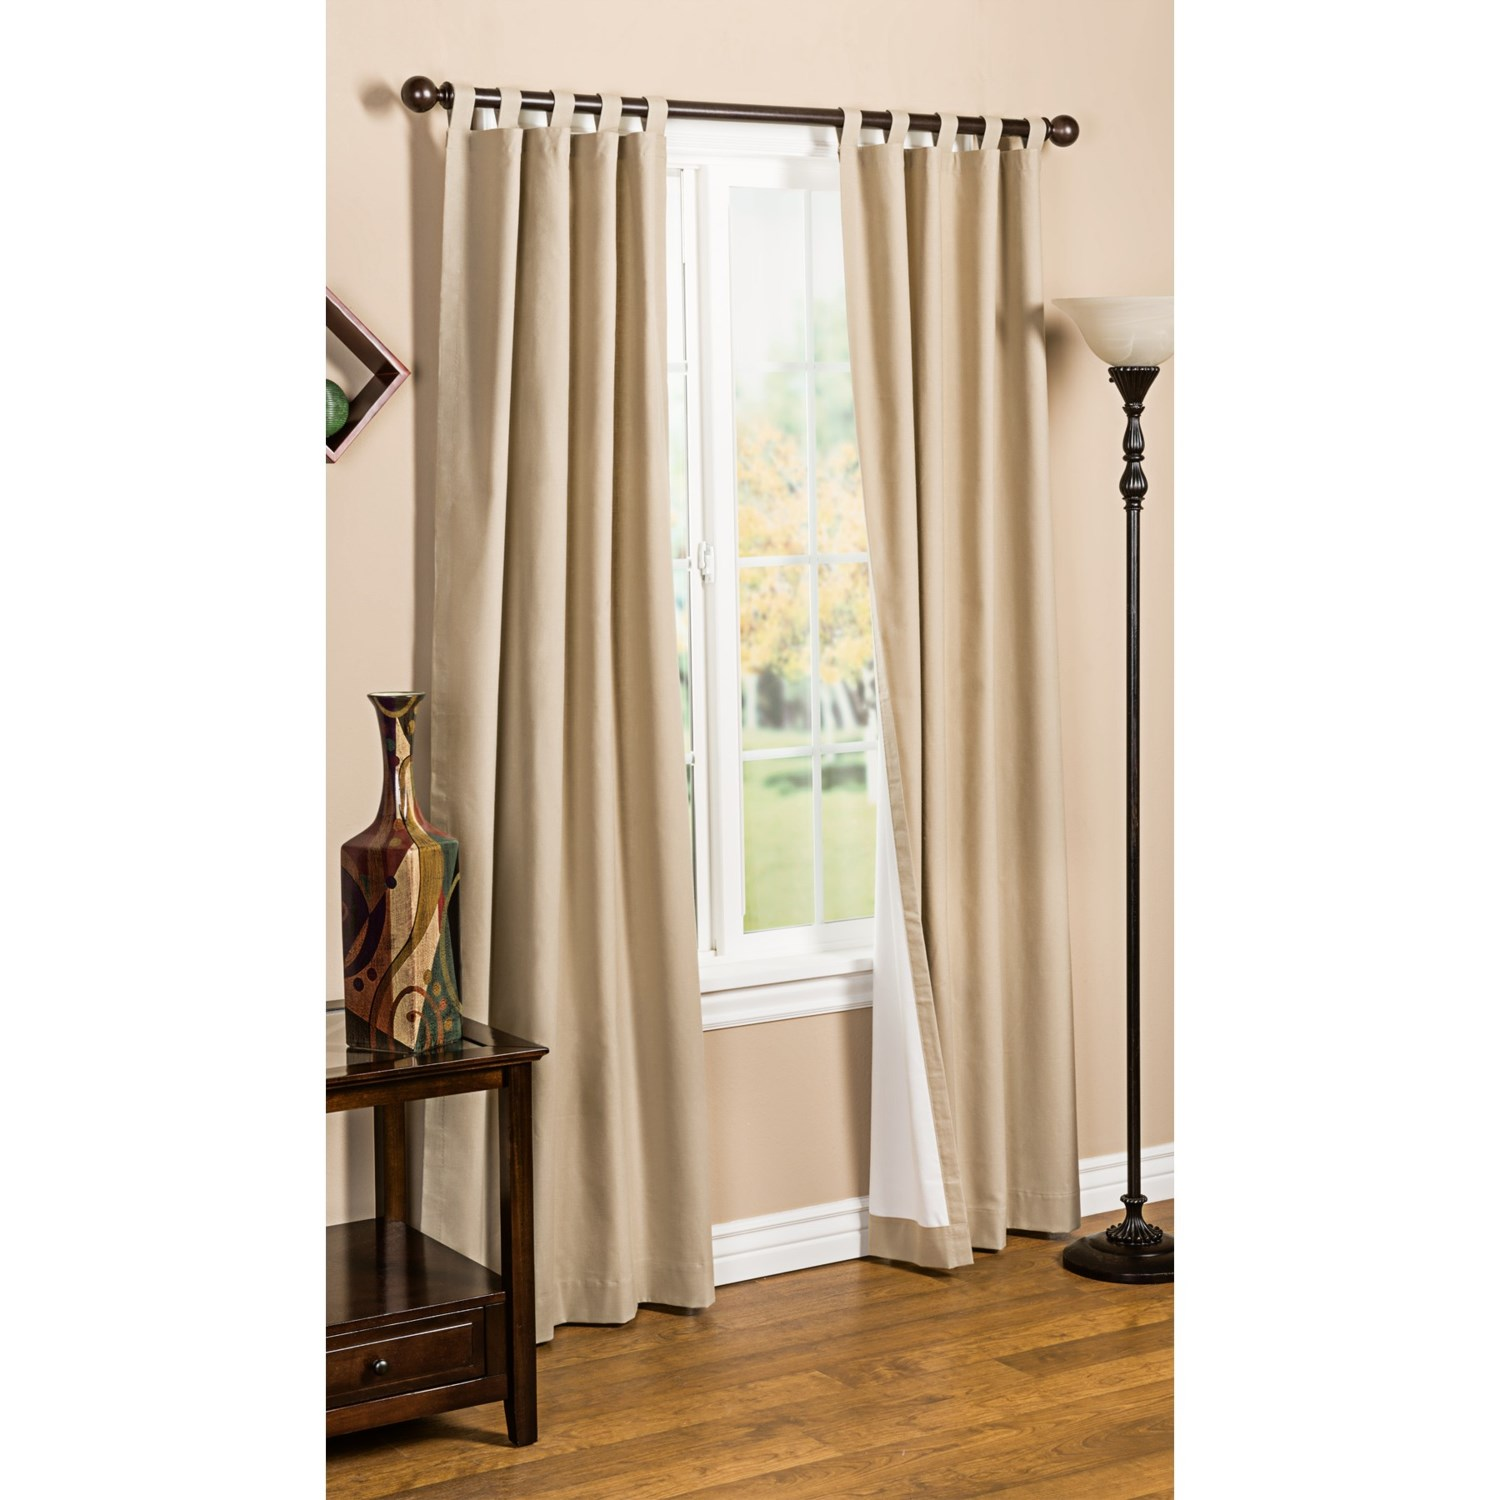 Tab Top Curtains Australia Commonwealth Thermal Lined Tab Top Curtain Panels 94025